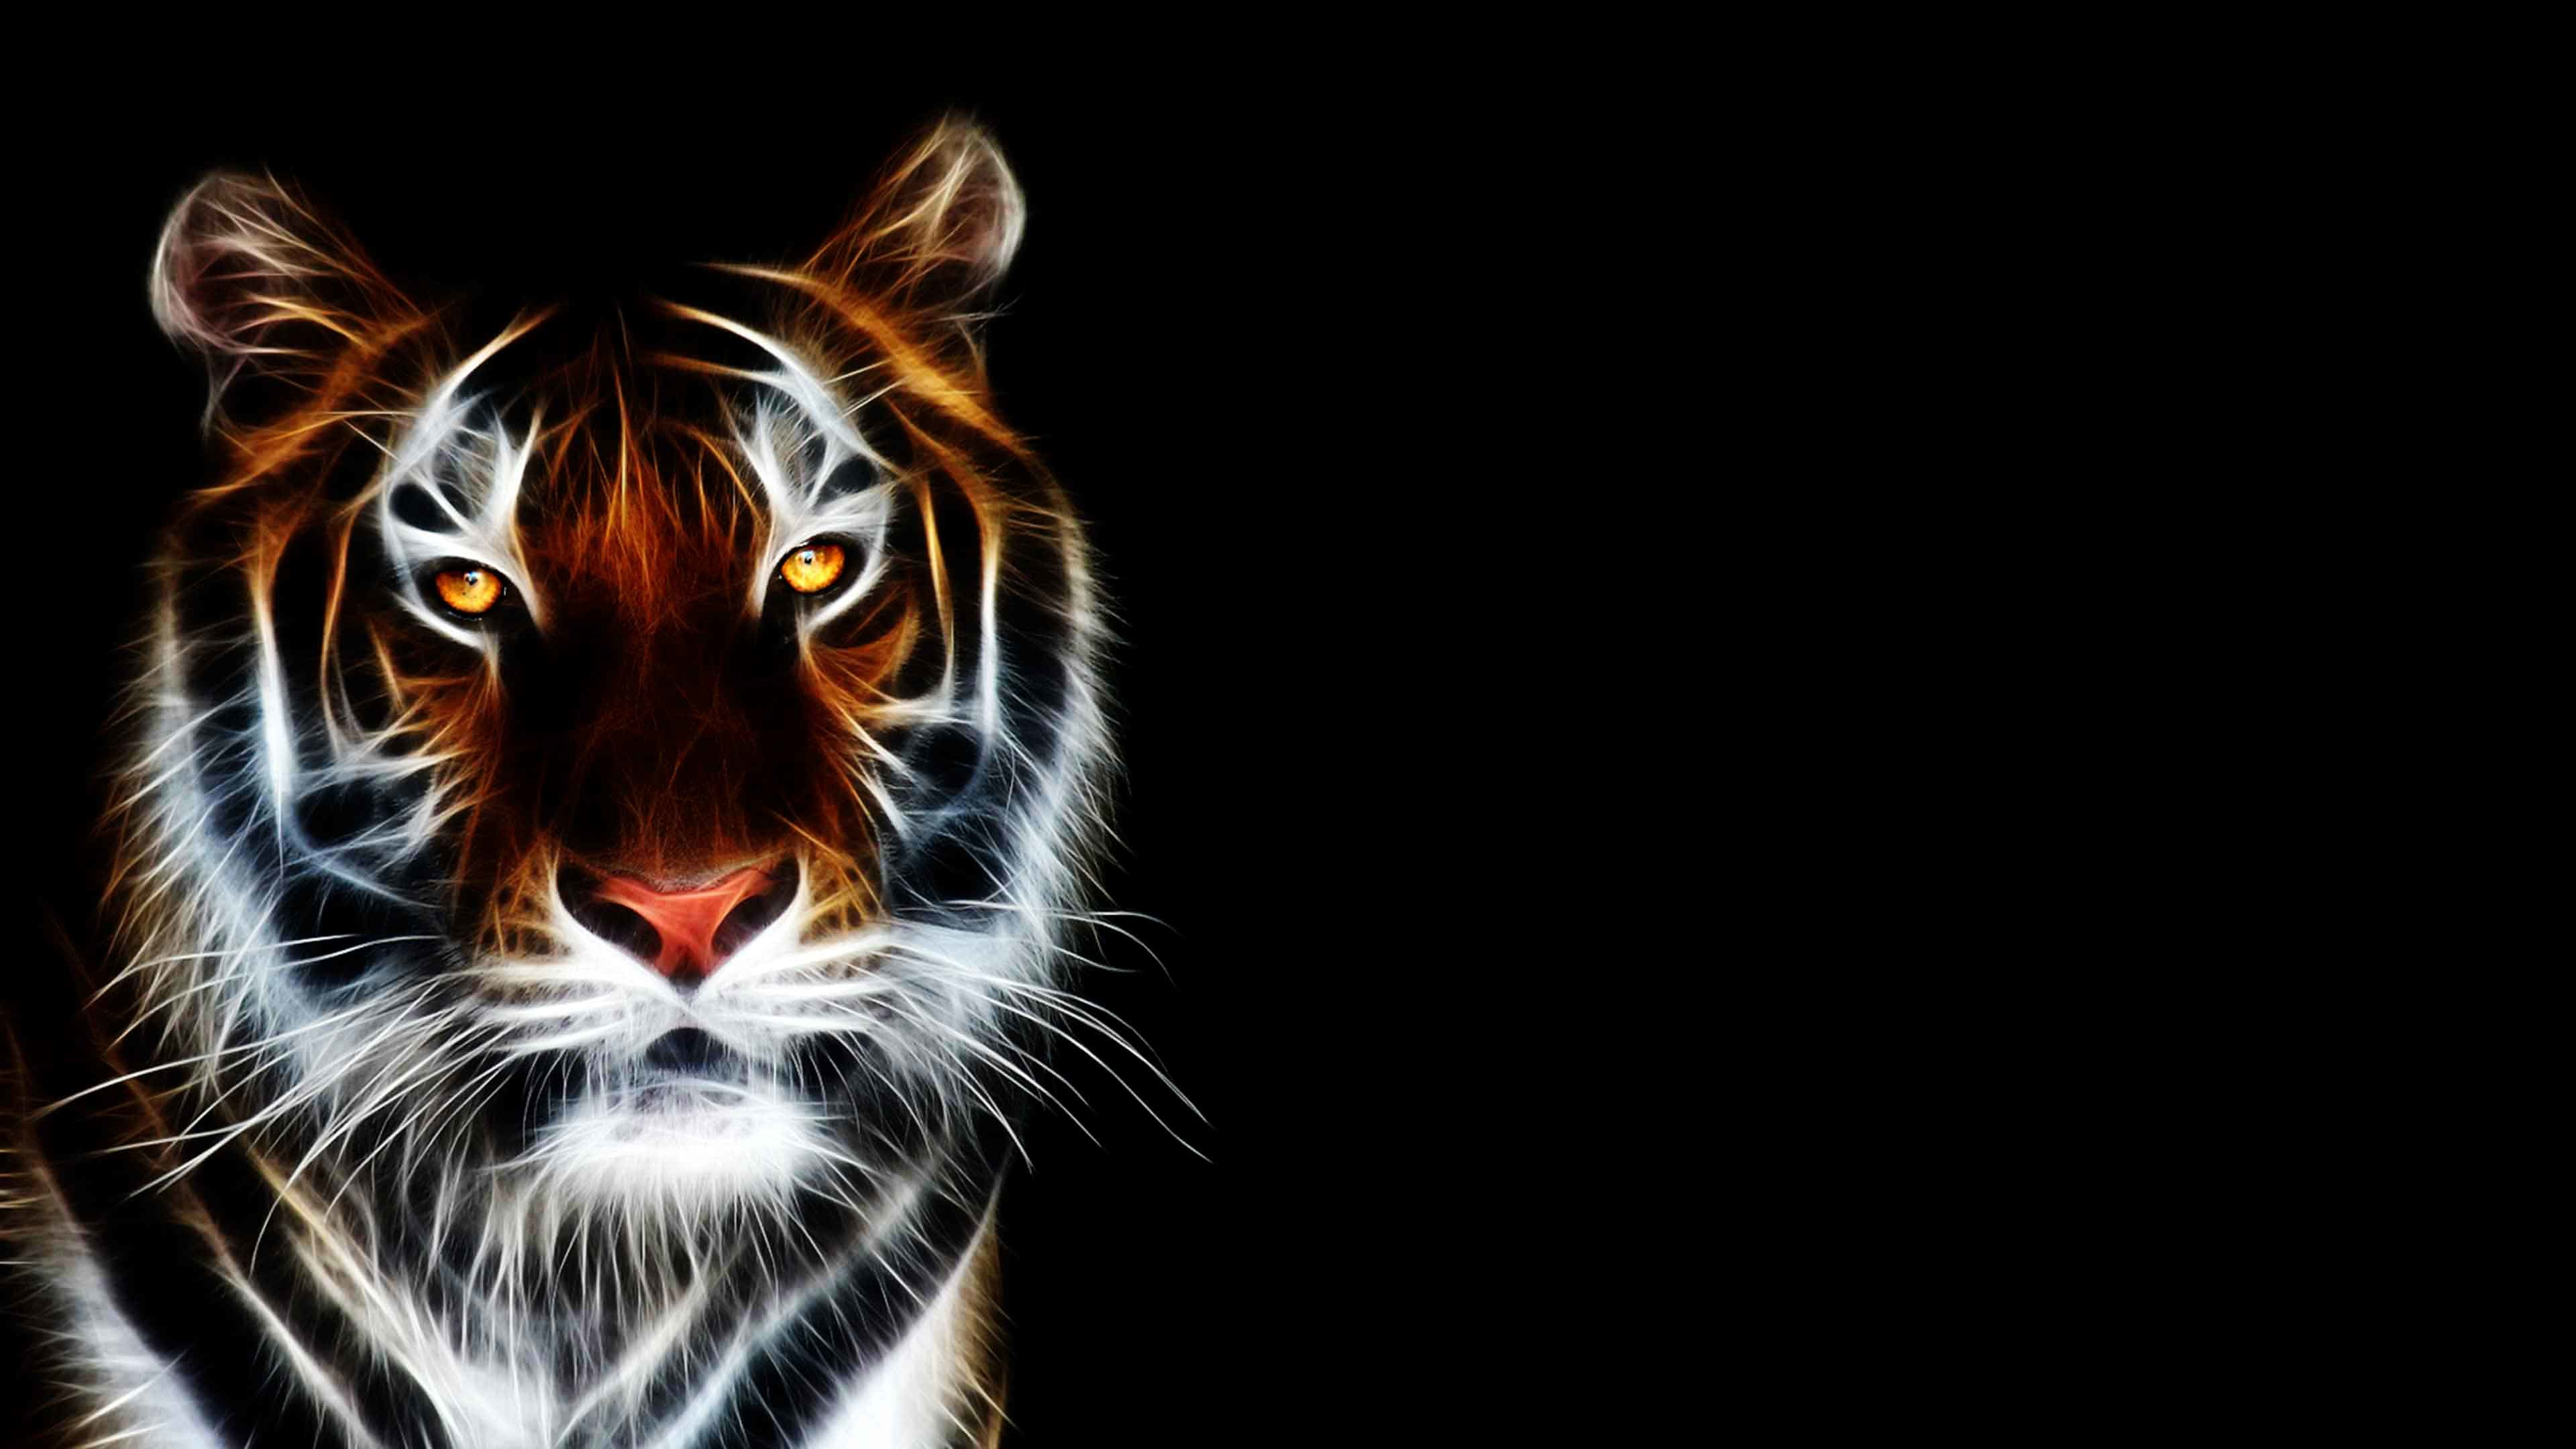 Tiger Wallpaper 3d Posted By Zoey Peltier